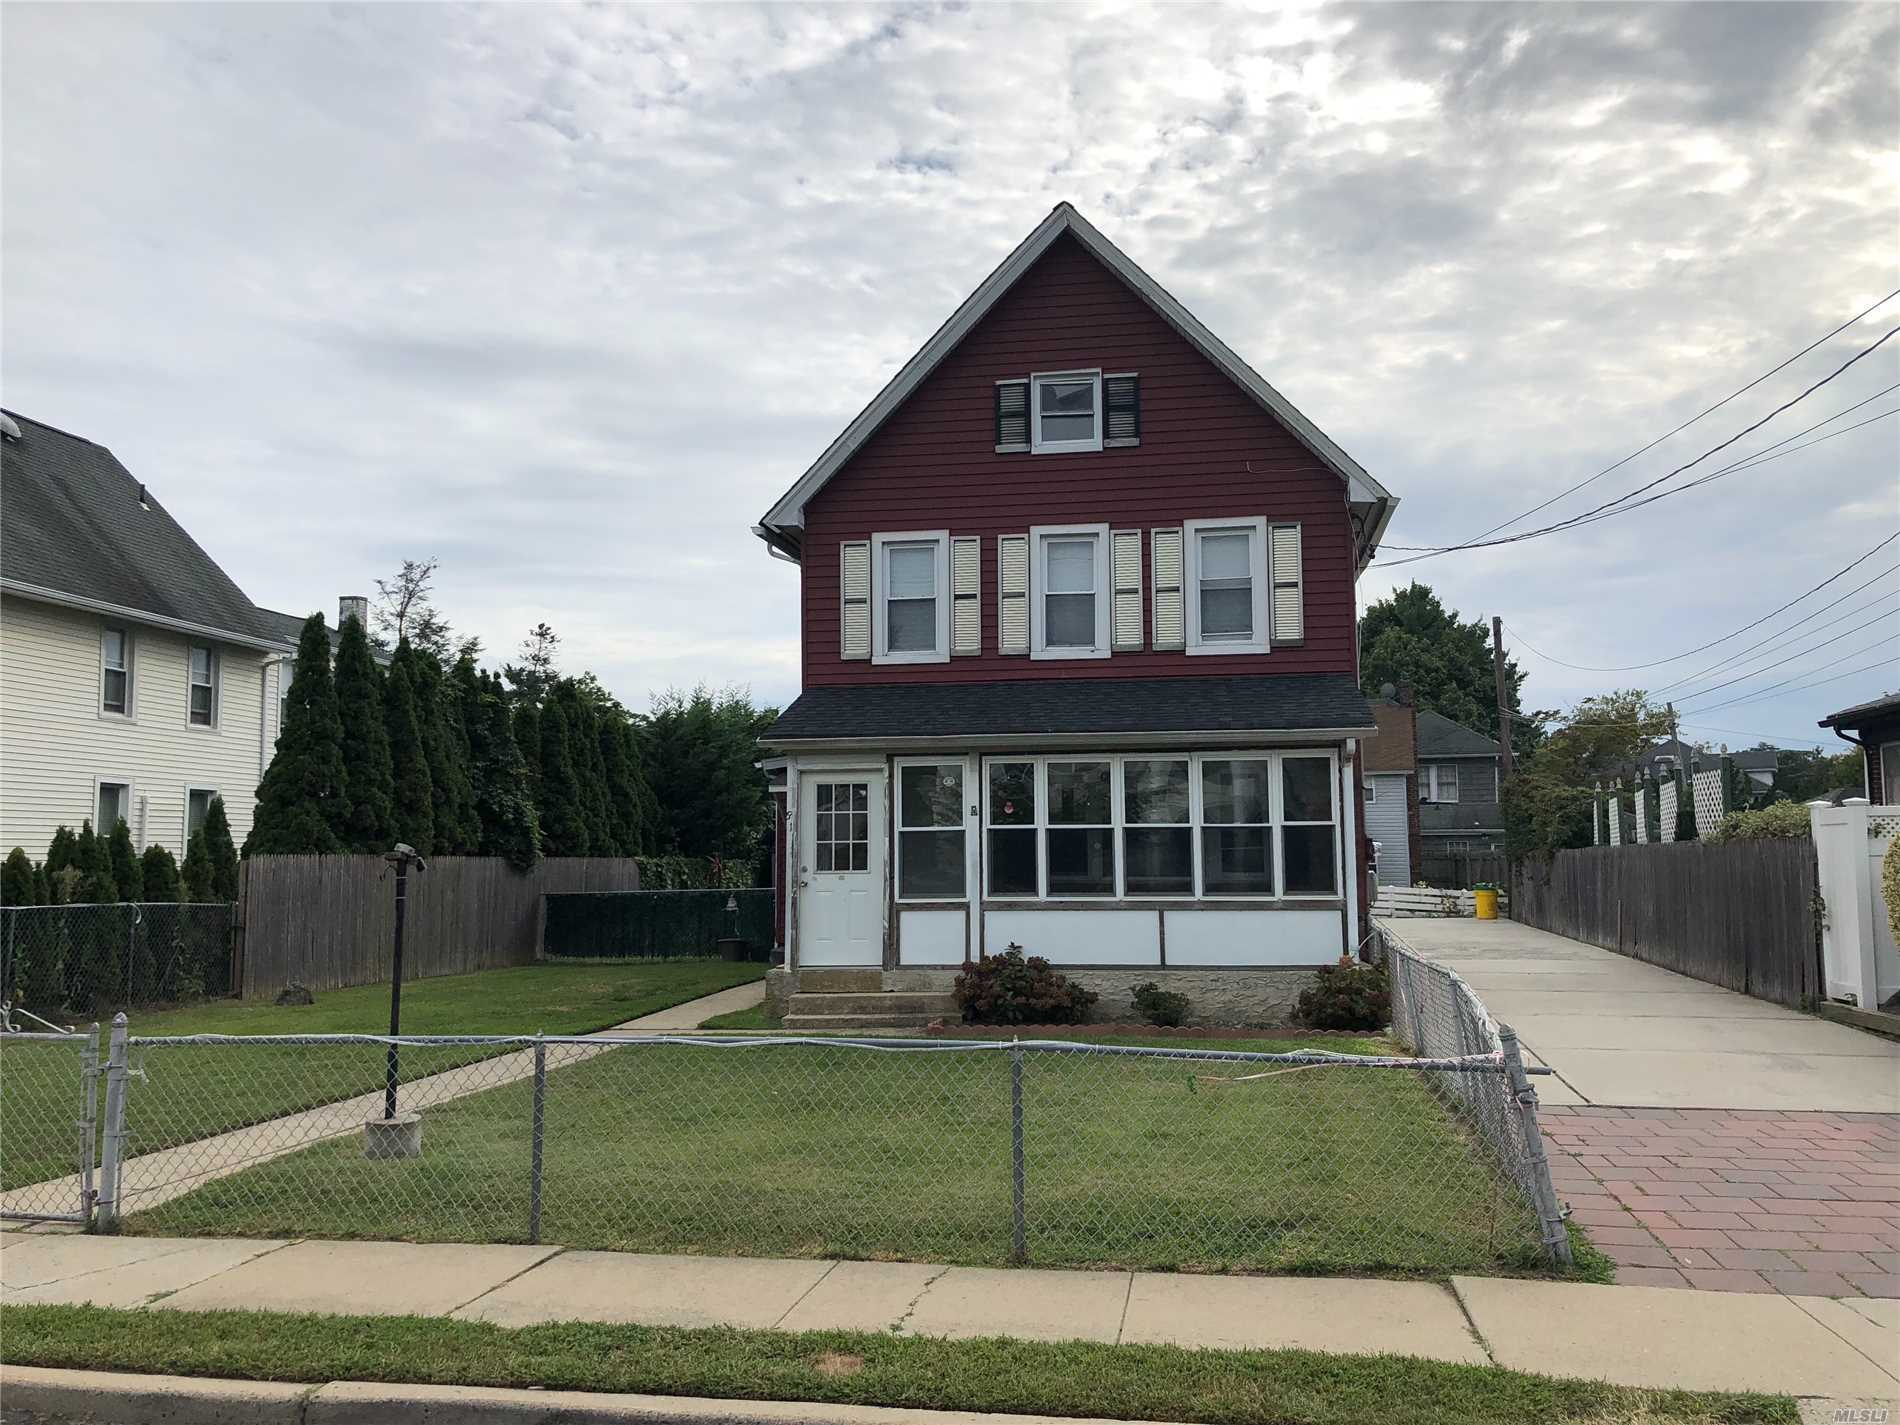 Whole House Rental In Prime Location. 3 Bedrooms 2 Bathrooms Updated Kitchen Private Yard Space. Pets Considered On A Case By Case Basis With Extra Security.